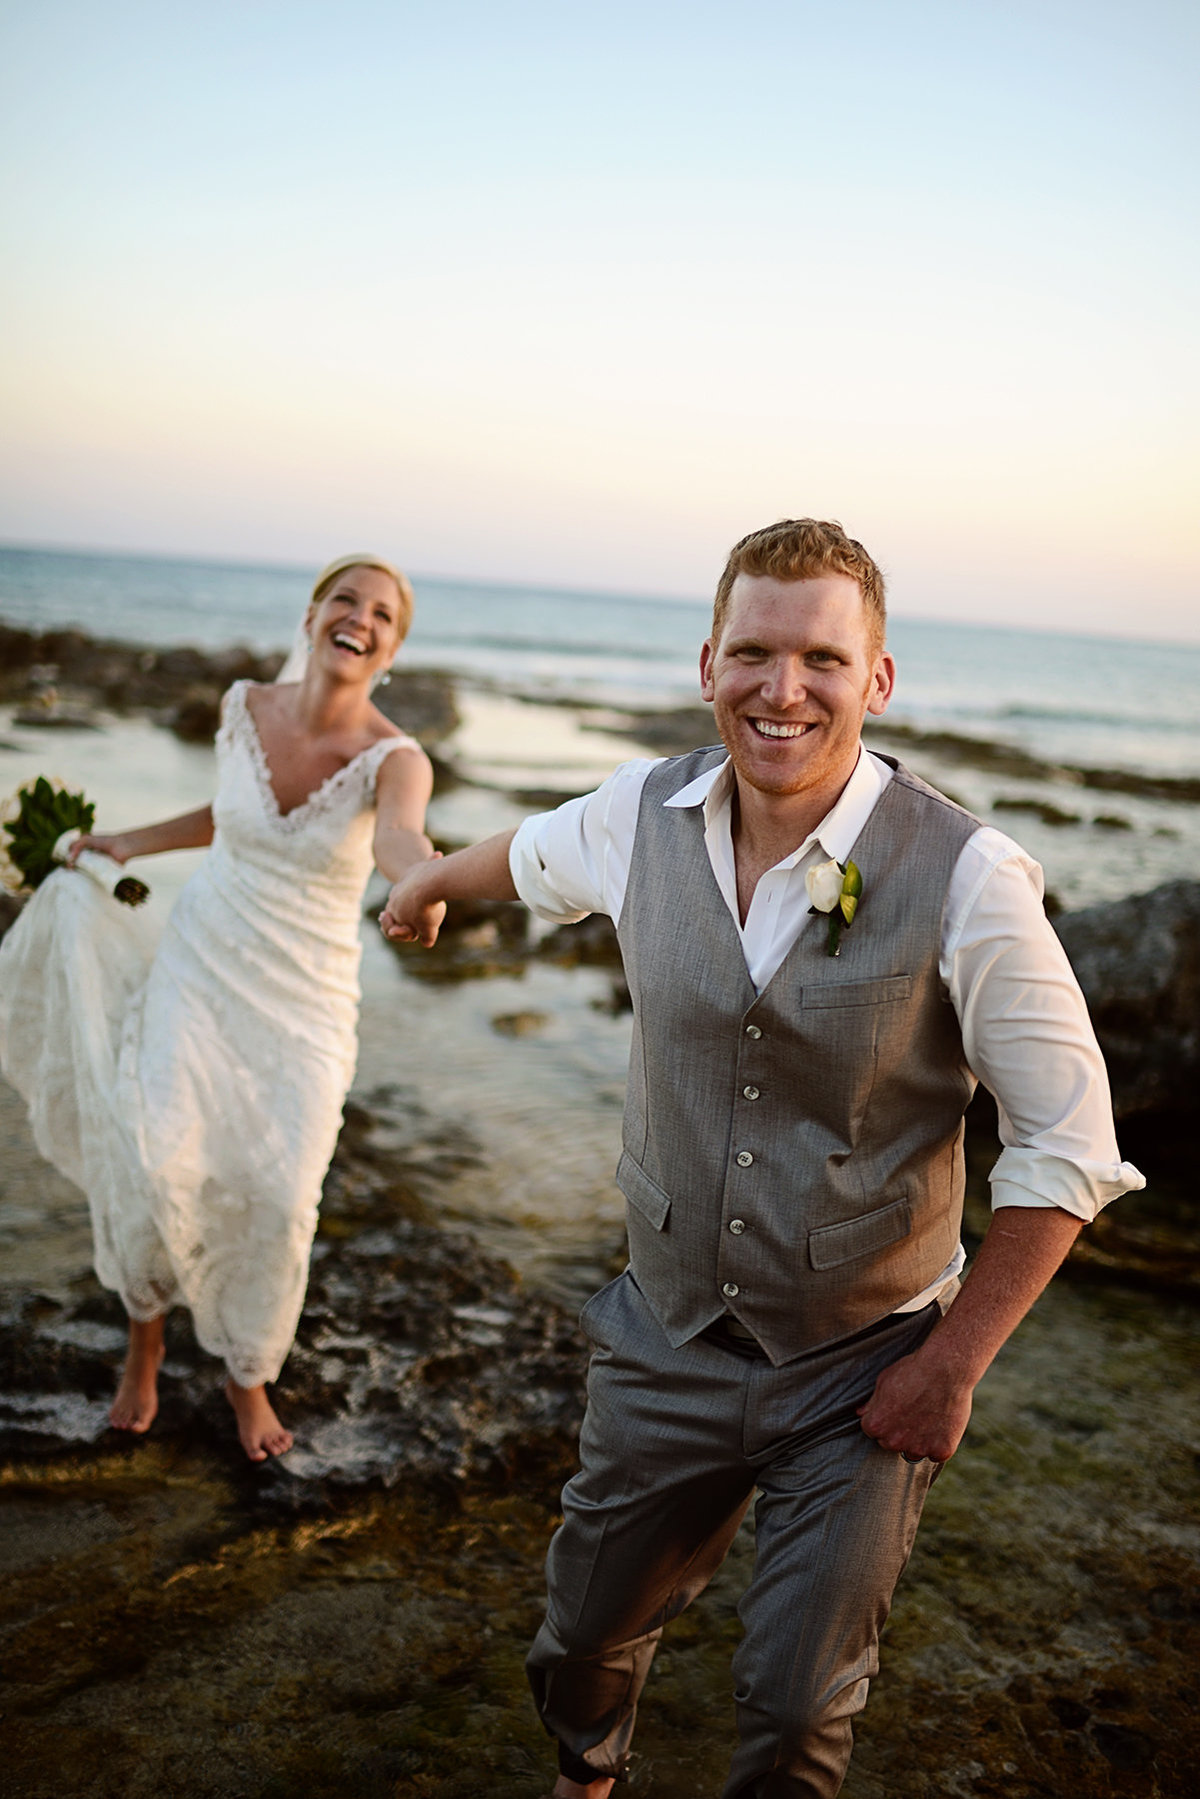 barcelo maya beach resort wedding destination wedding photographer bryan newfield photography 40